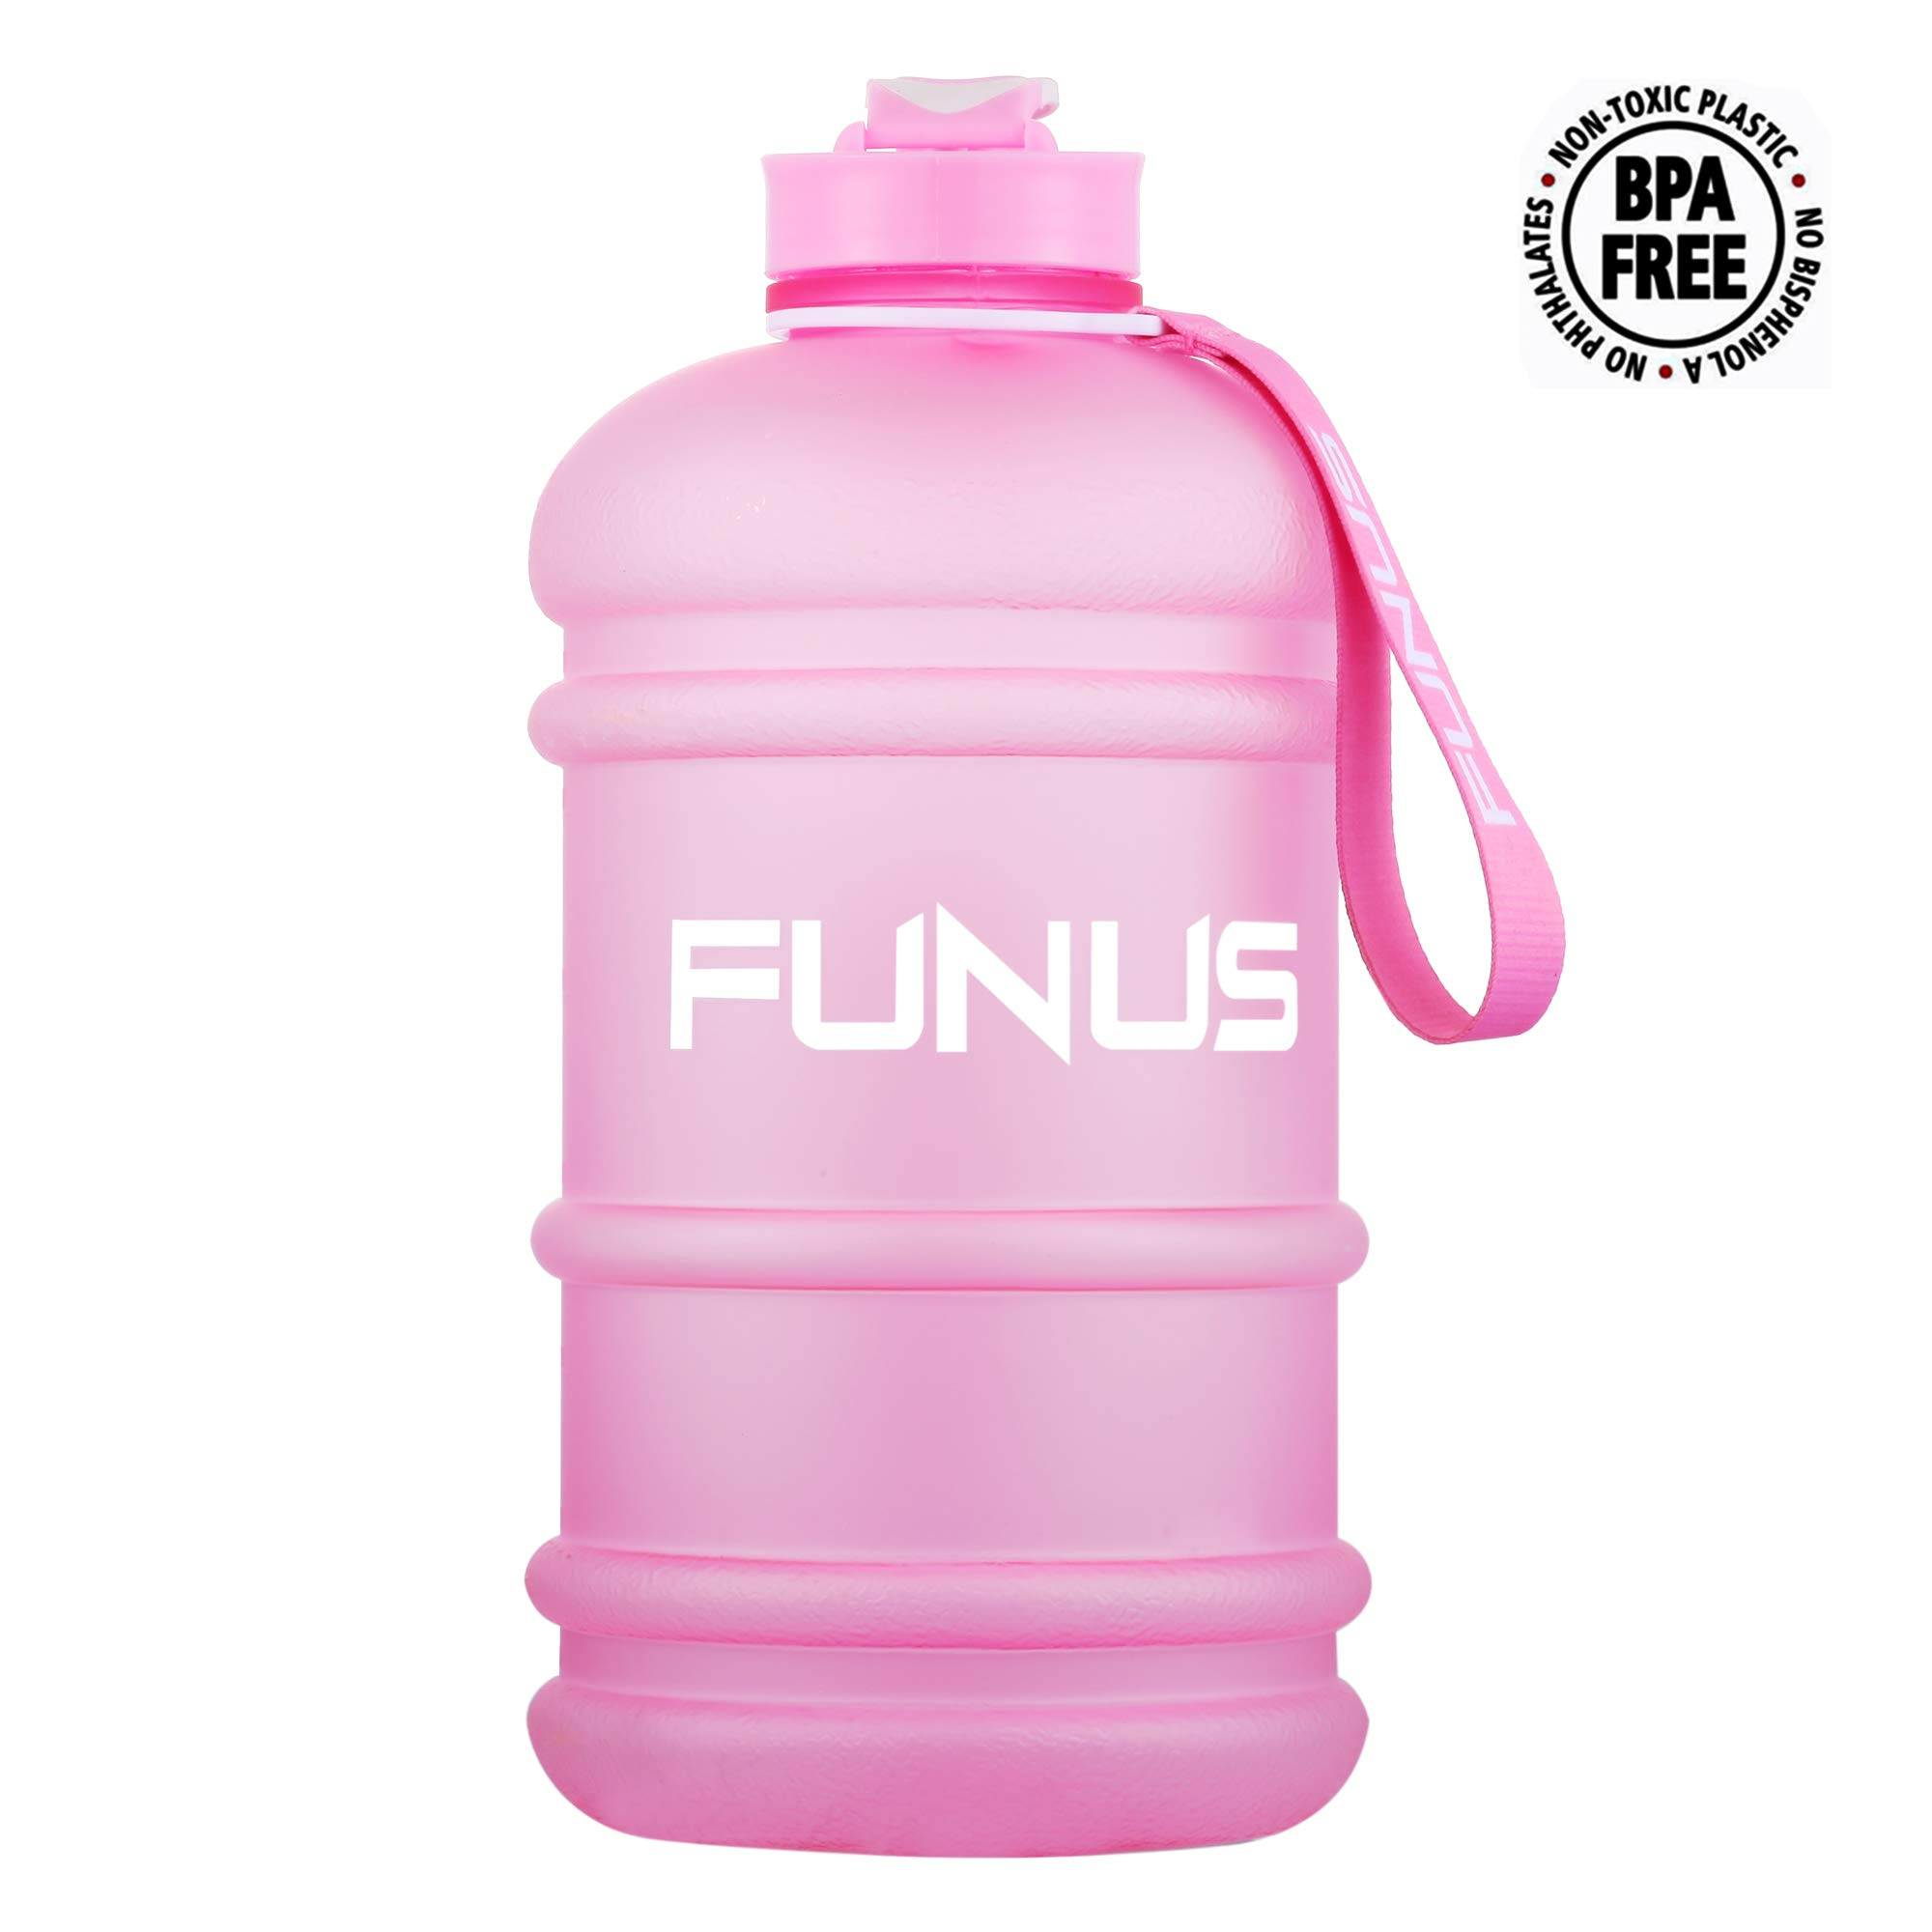 FUNUS Big Water Bottle 1.3L-2.2L Large Water Bottle BPA Free Leak Proof Reusable Odorless Big Capacity Water Jug for Men Women Fitness Gym Outdoor Climbing Gym Water Bottle (2.2L Frosted Blush) by FUNUS